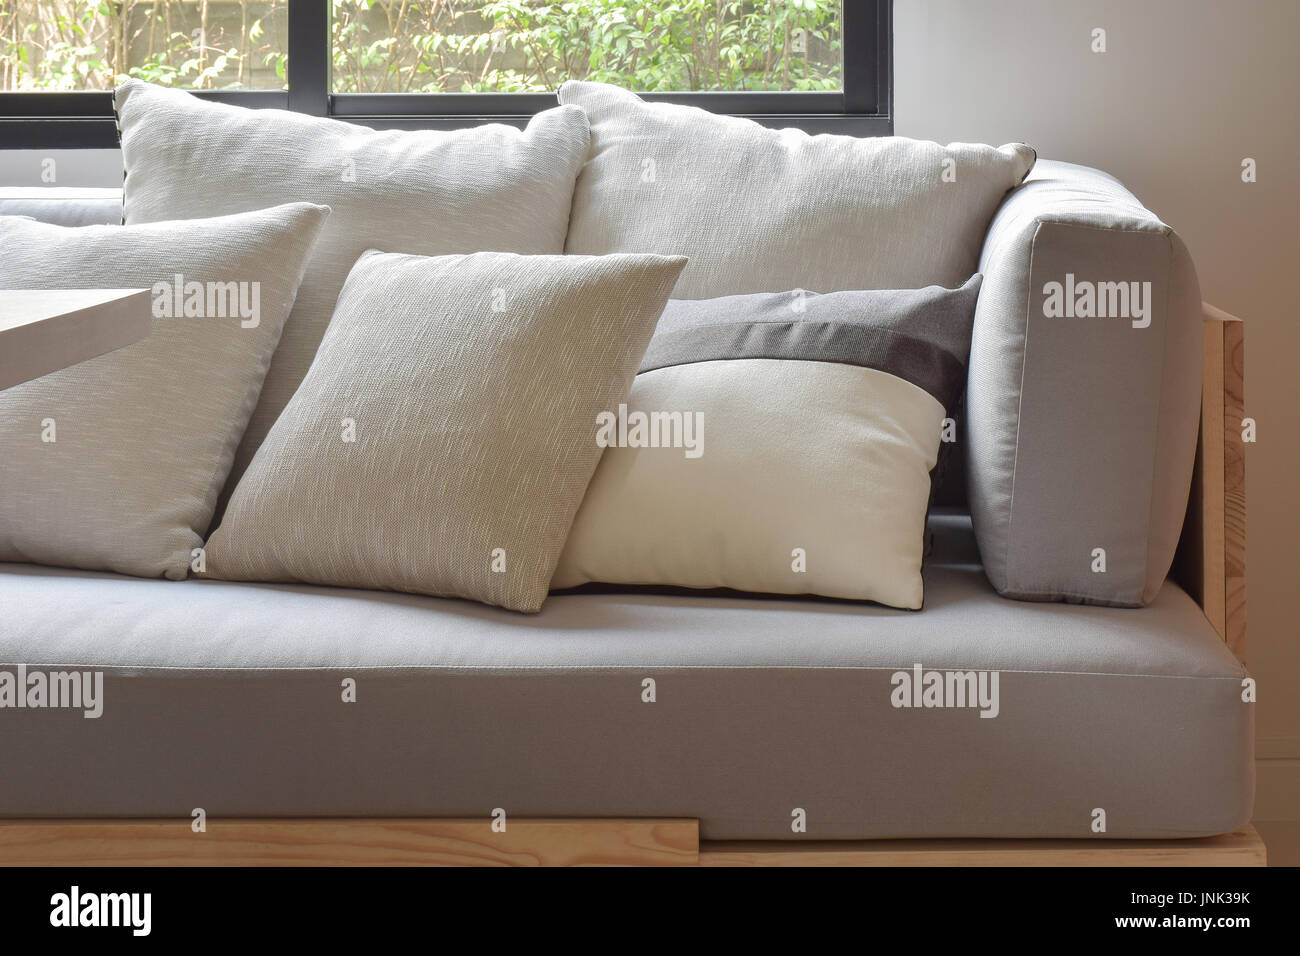 Beige varies size pillows setting on light gray comfy sofa - Stock Image